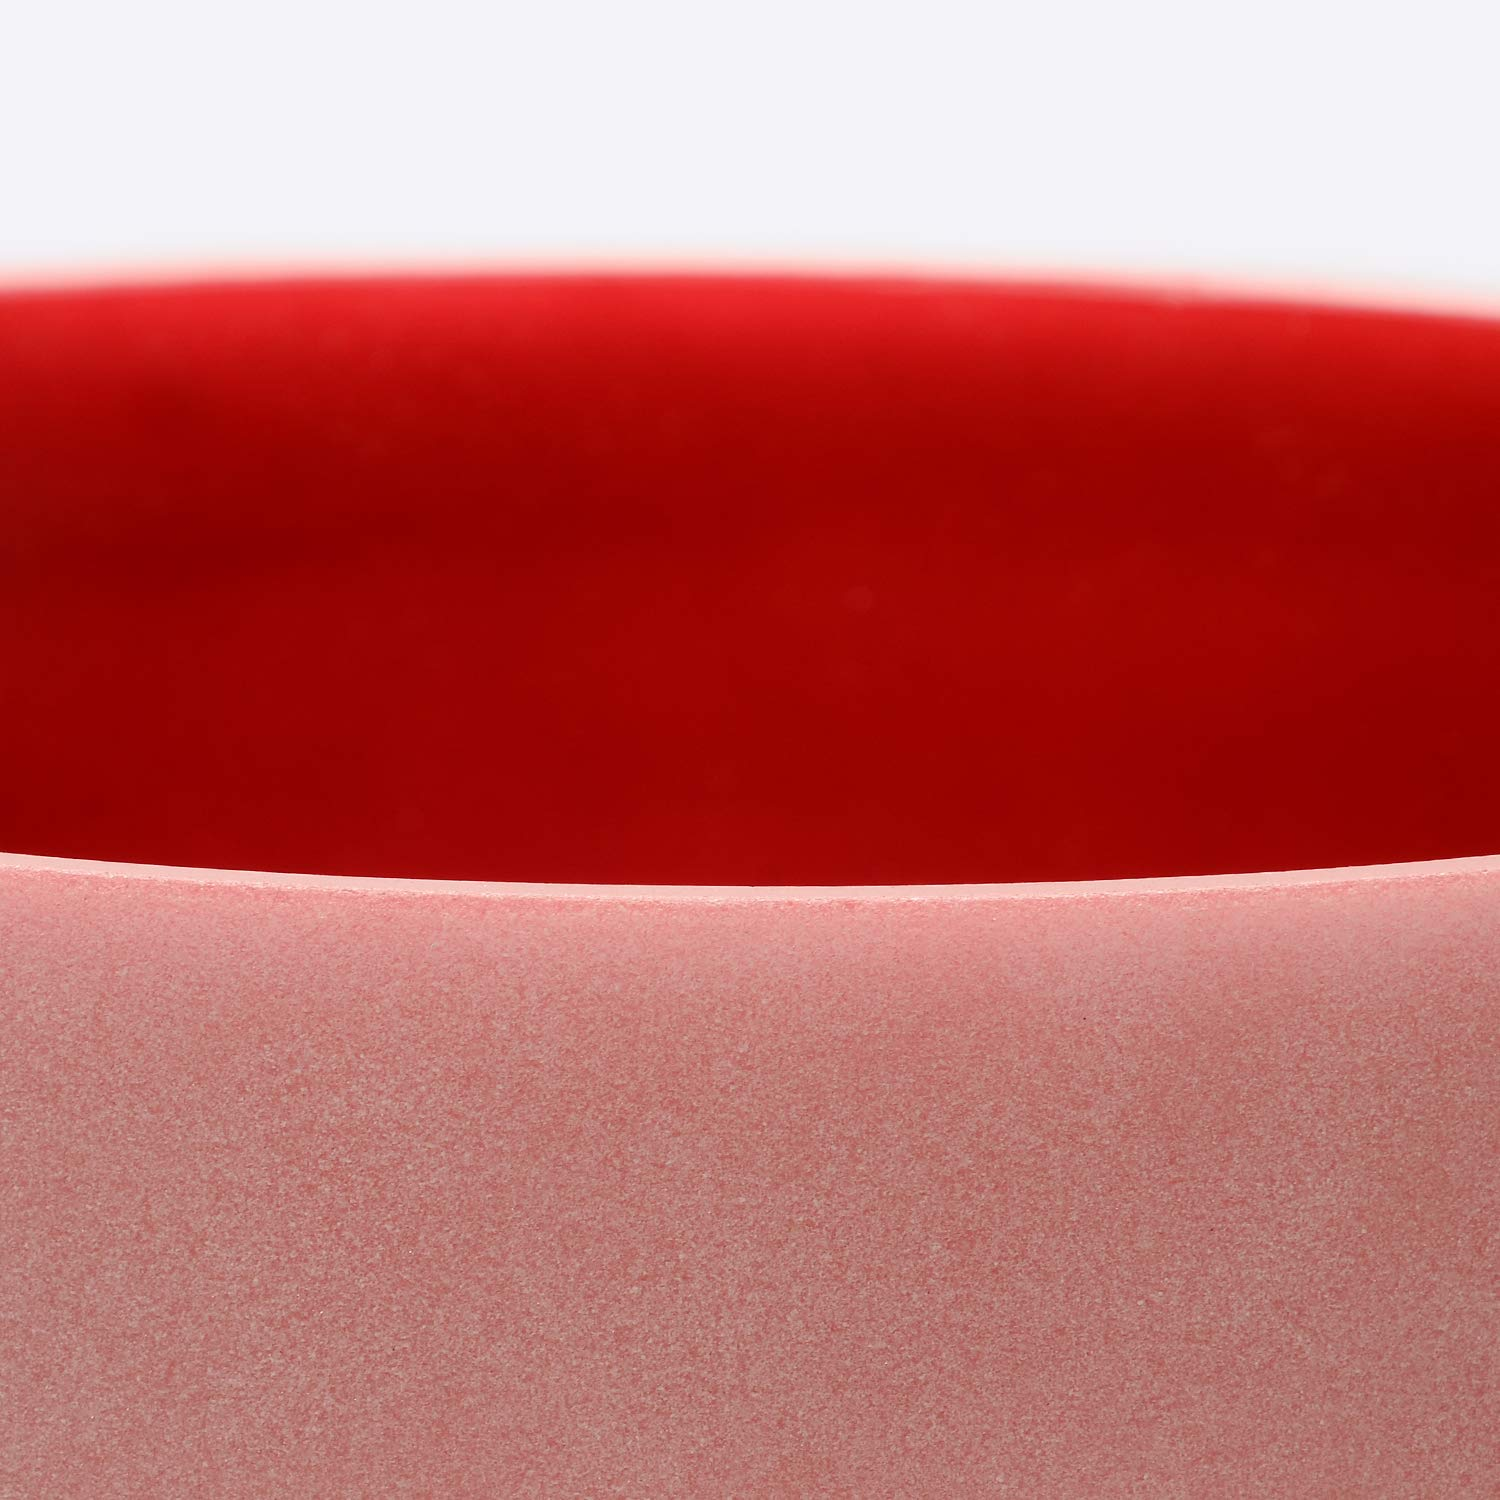 TOPFUND Red Color Quartz Crystal Singing Bowl C Note Root Chakra12 inch O-Ring and Rubber Mallet Included by TOPFUND (Image #5)